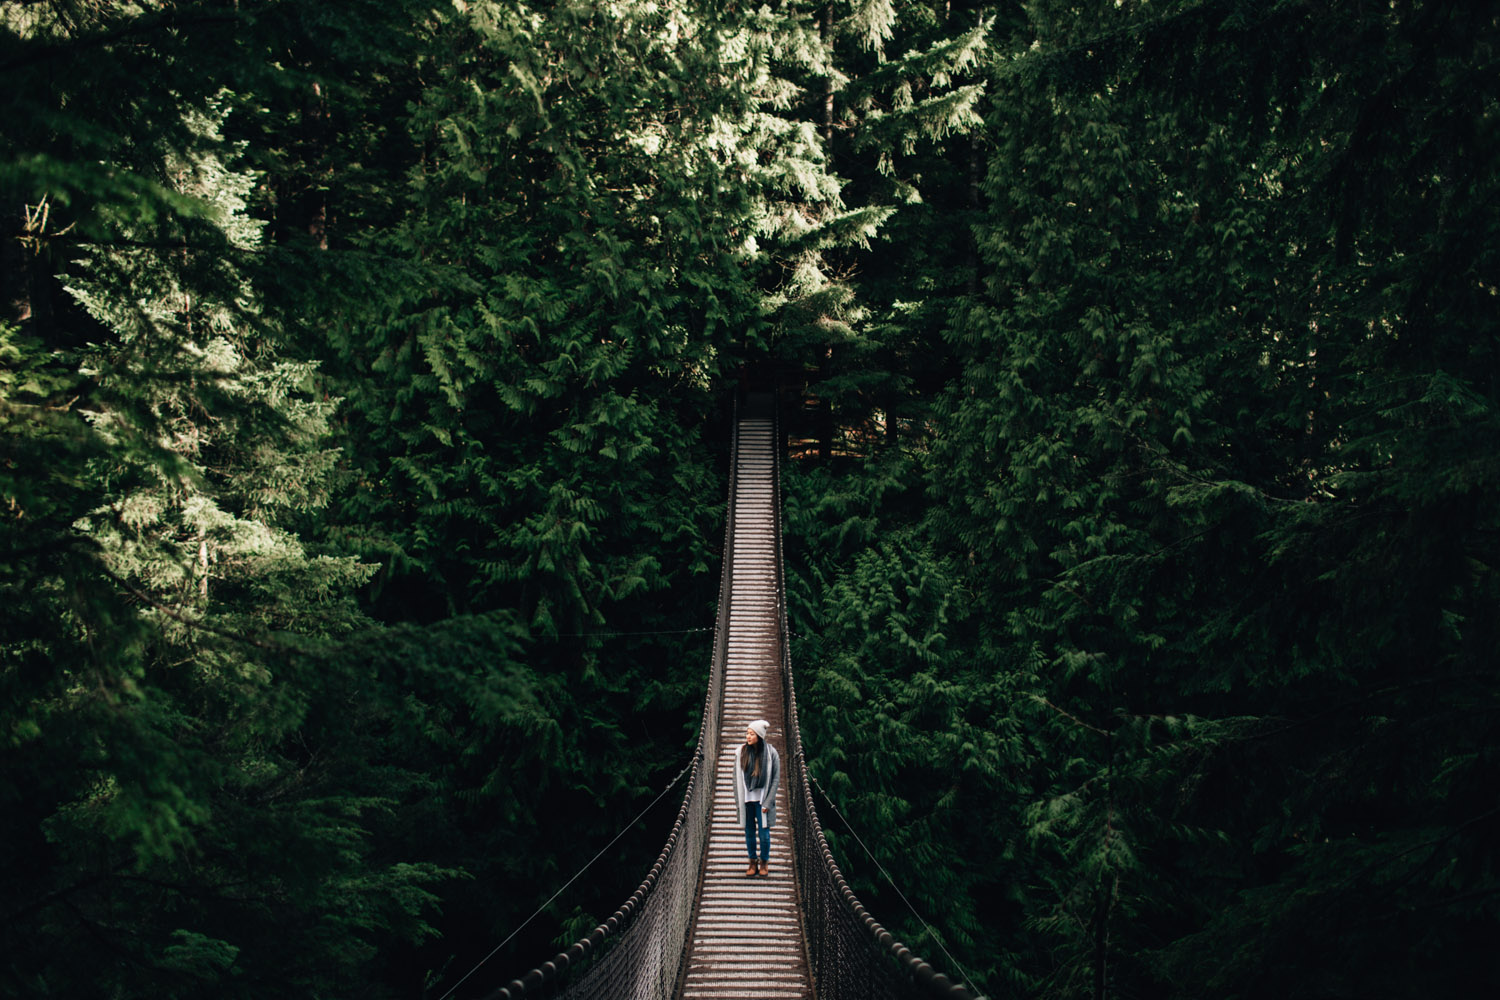 vancouver portrait photography with Sarah Lee in Lynn Canyon Park